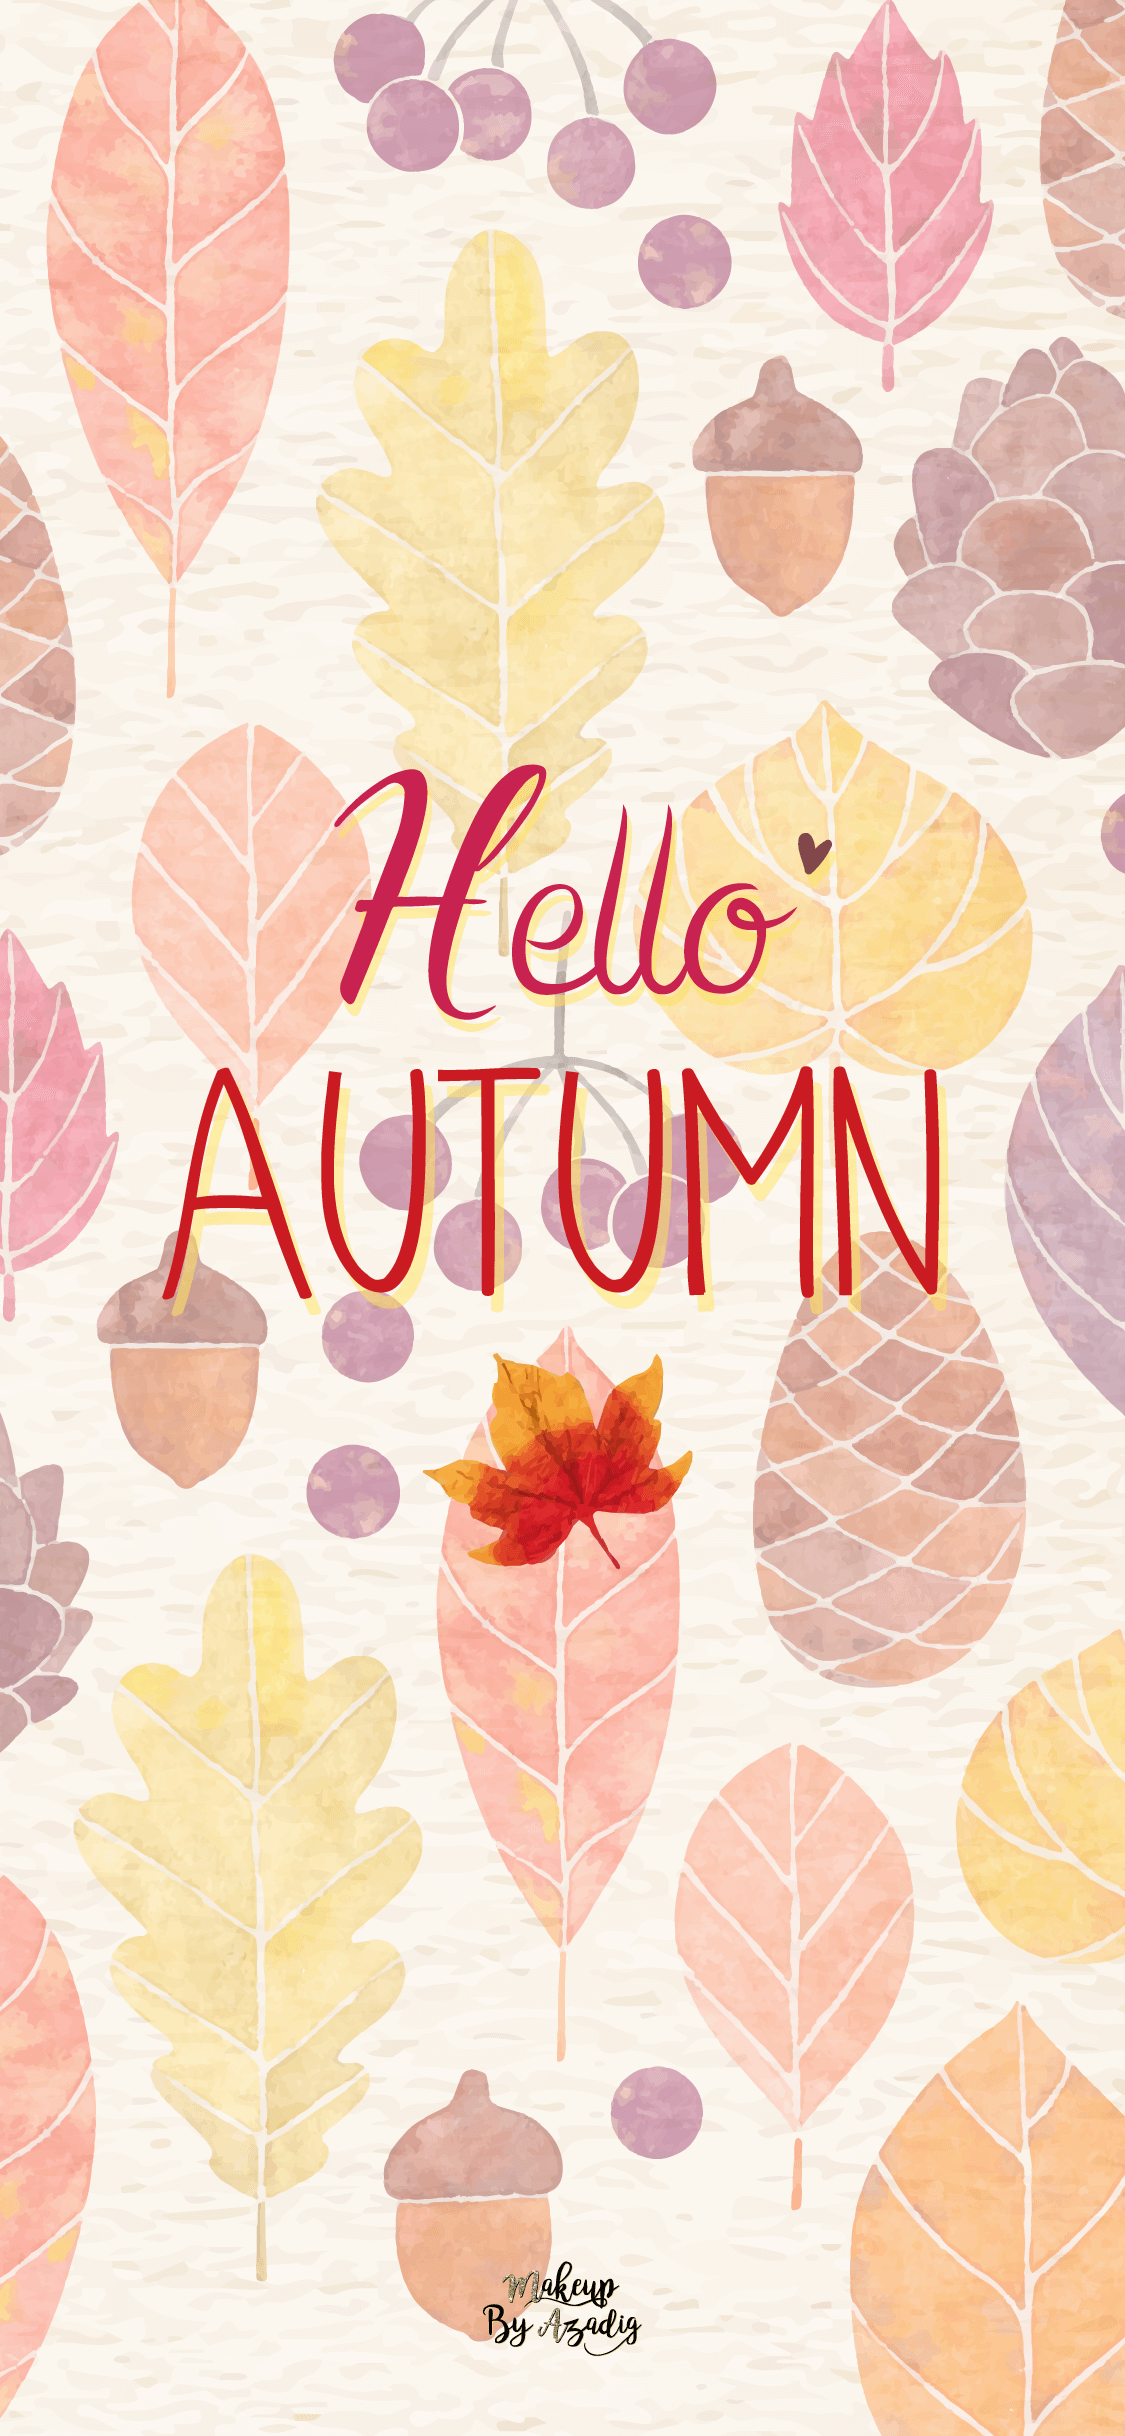 fond-decran-wallpaper-hello-autumn-automne-iphone-X-makeupbyazadig-tendance